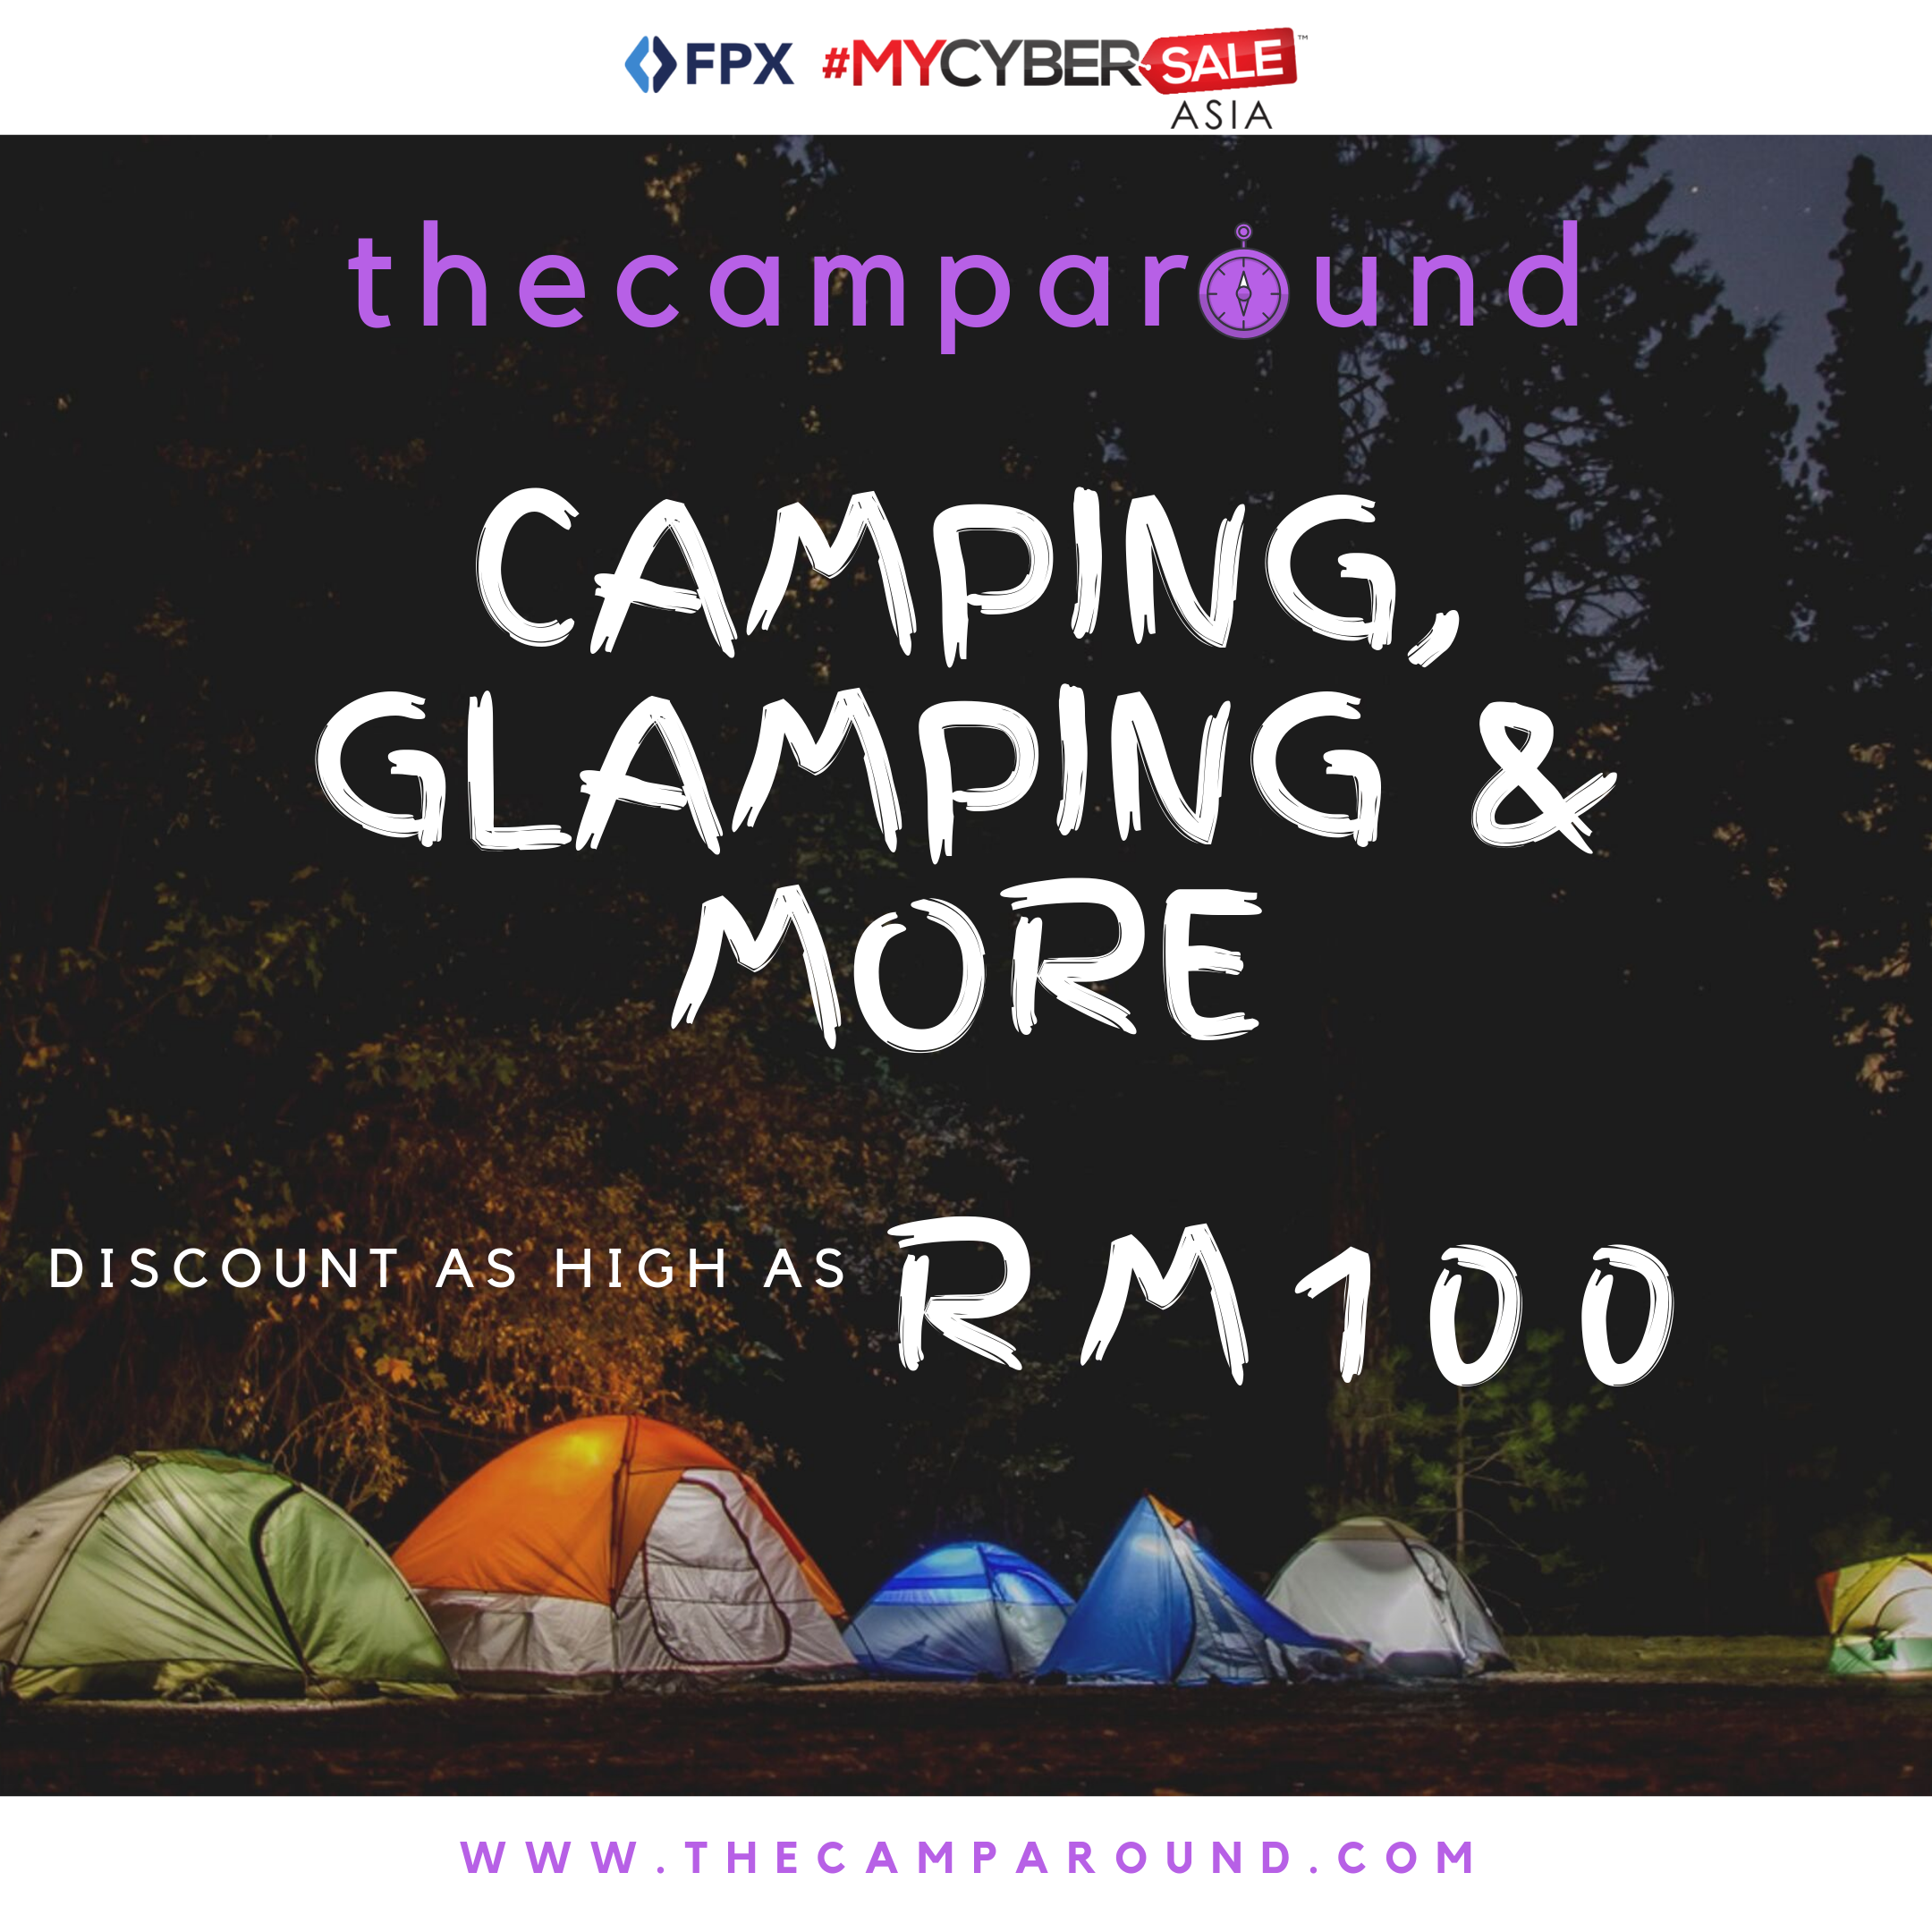 thecamparound mycybersale asia 2019 camping glamping